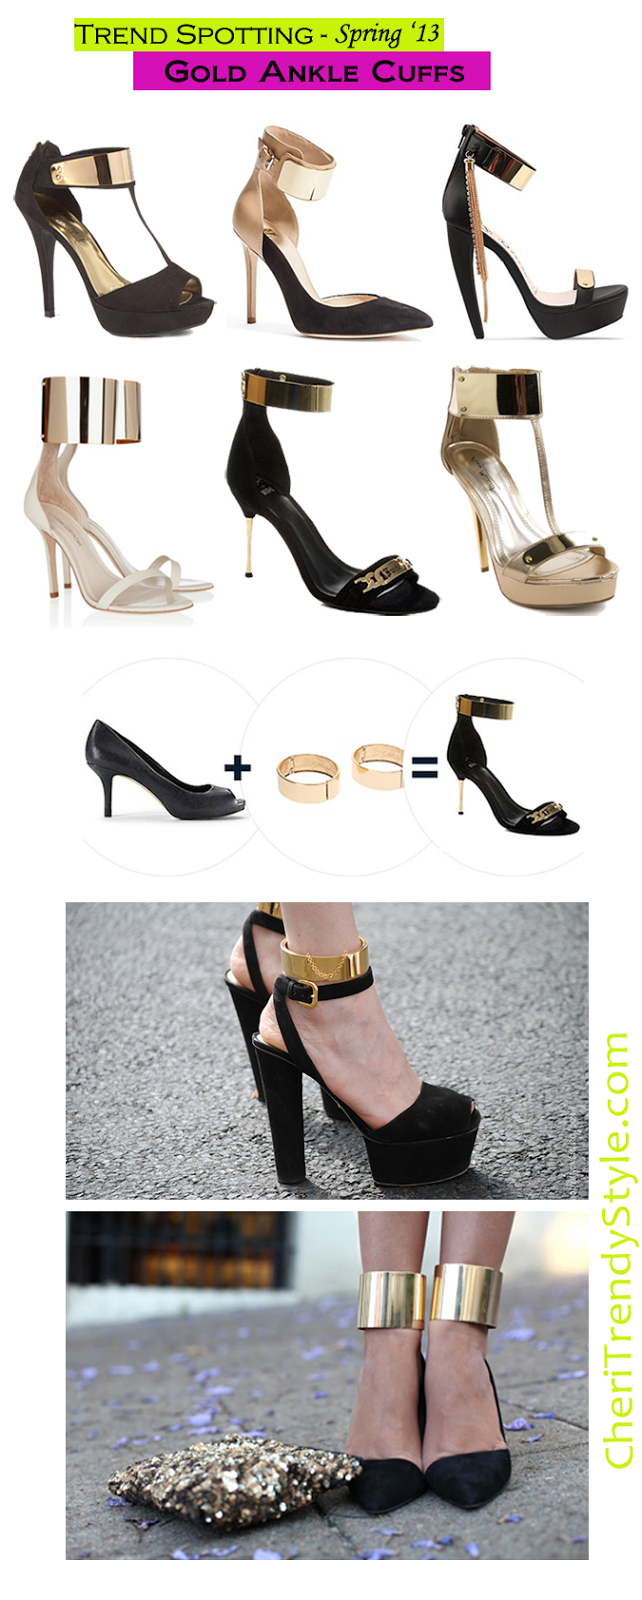 spring, trend, heels, zara, ankle strap heels, ankle heels, ankle strap sandals, neon, prabal gurung, neon pointed shoe, black white, minimalistic, gold cuff sandals, gold cuff, jeffrey campbell, gold chunky chains